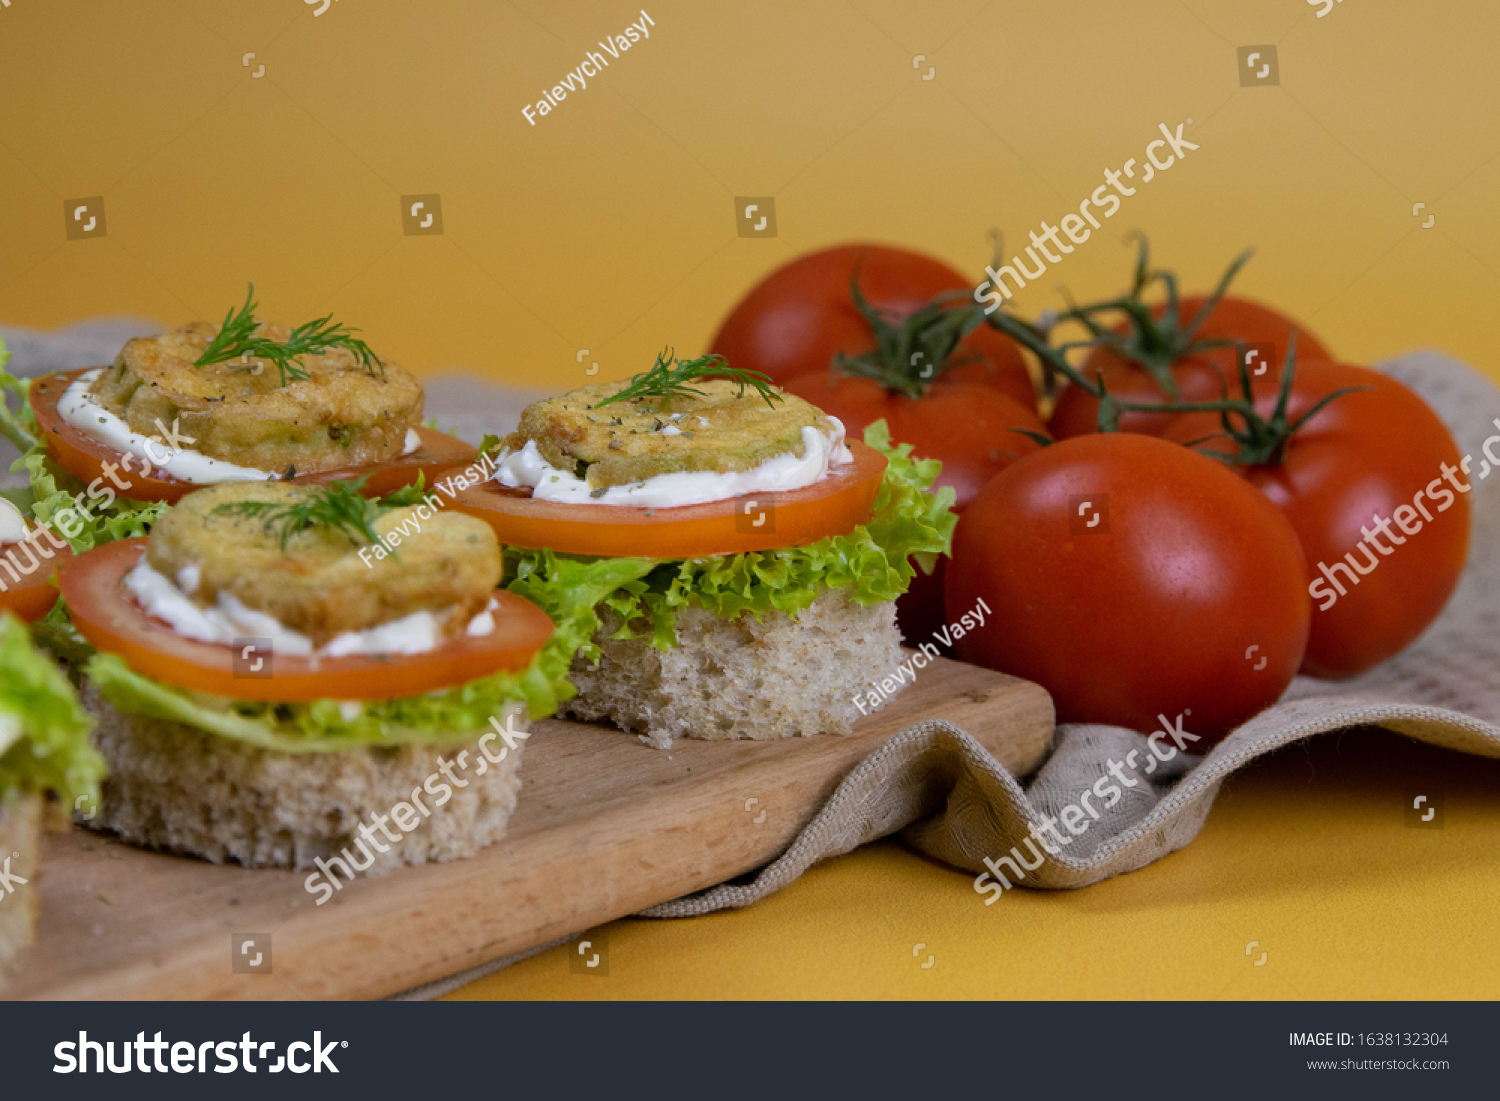 Sandwich with lettuce, cheese, tomatoes and roasted courgettes, on top is a piece of dill, all standing on a wooden board on an orange background. Front views #1638132304